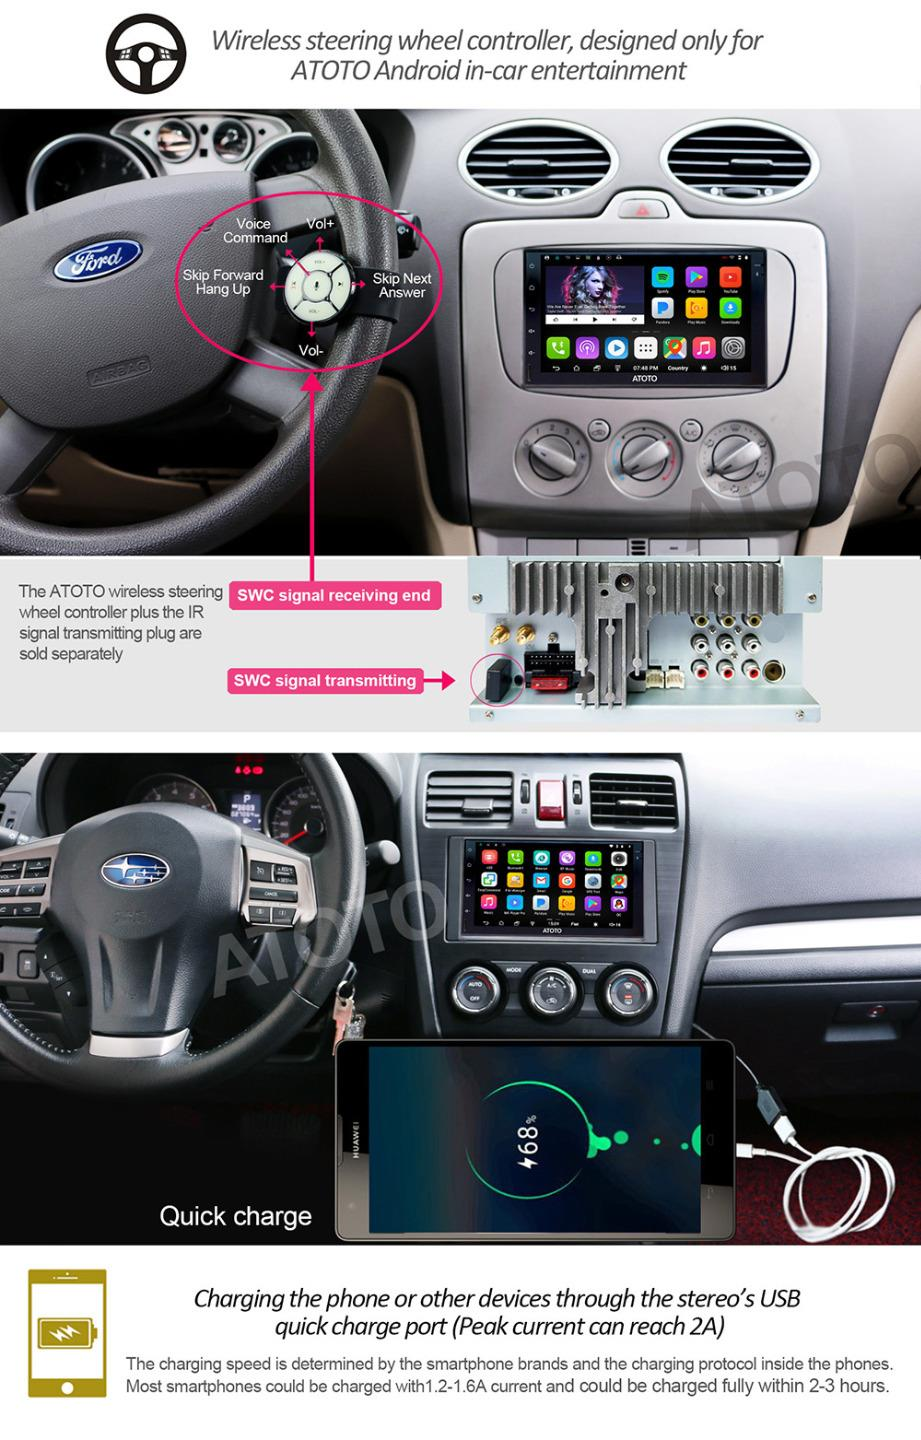 atoto a6 android car gps stereo 2a charge a6tyt711p 2s. Black Bedroom Furniture Sets. Home Design Ideas